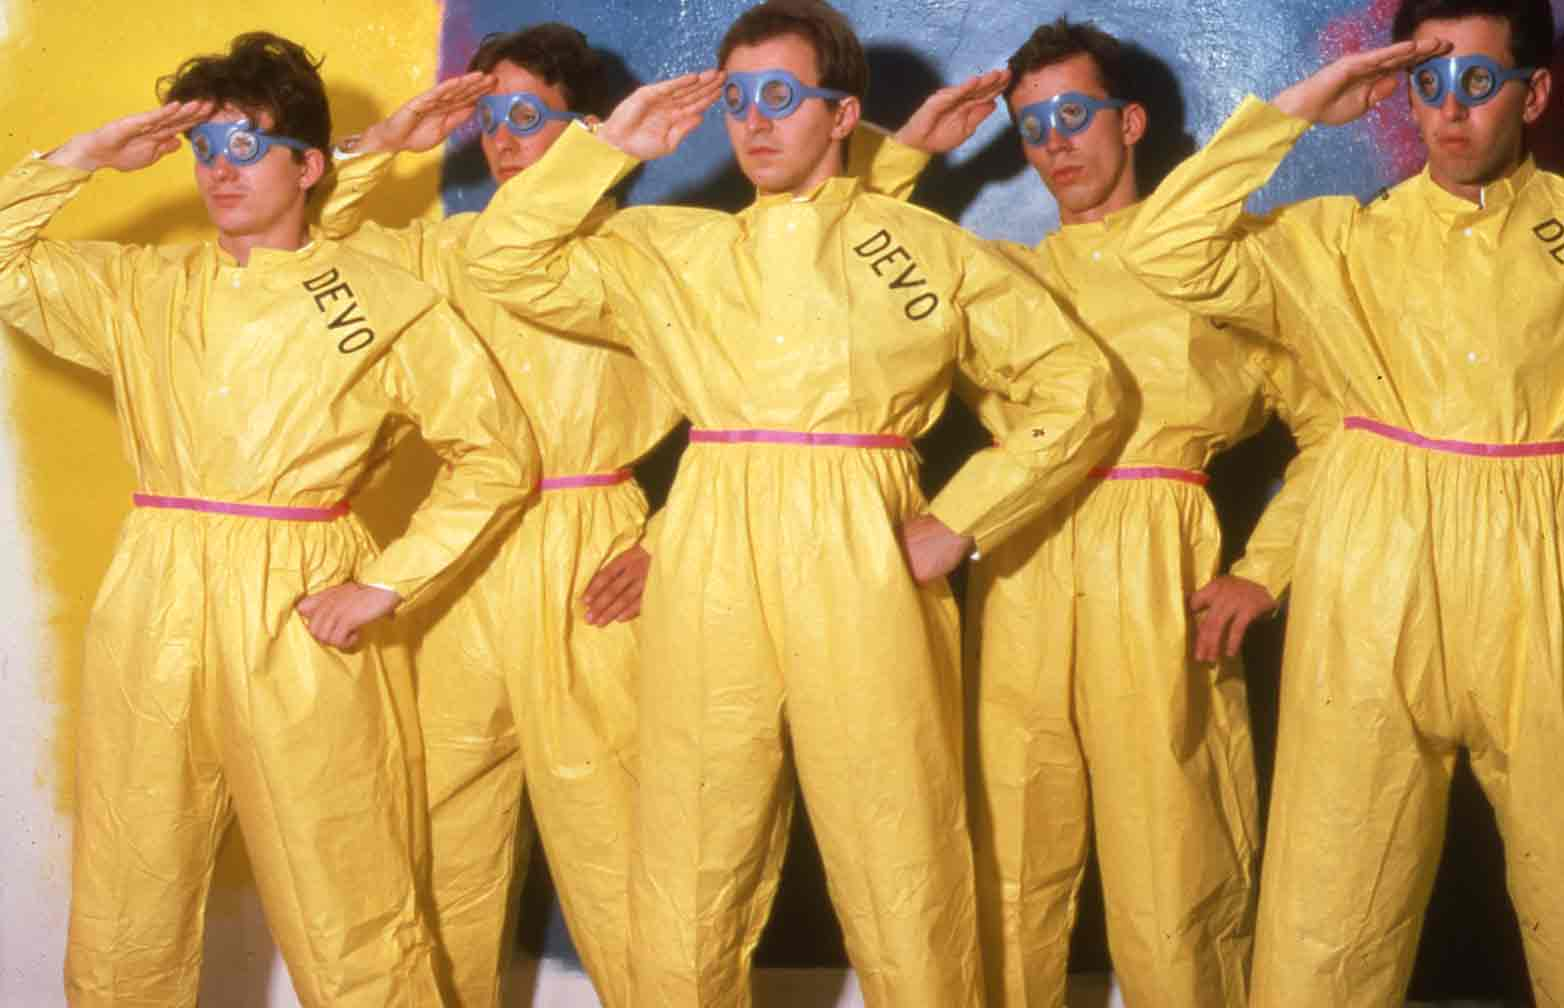 """DEVO: AIRBORNE, JANUARY 6, 1978, 1978. Photo: Bruce Conner"